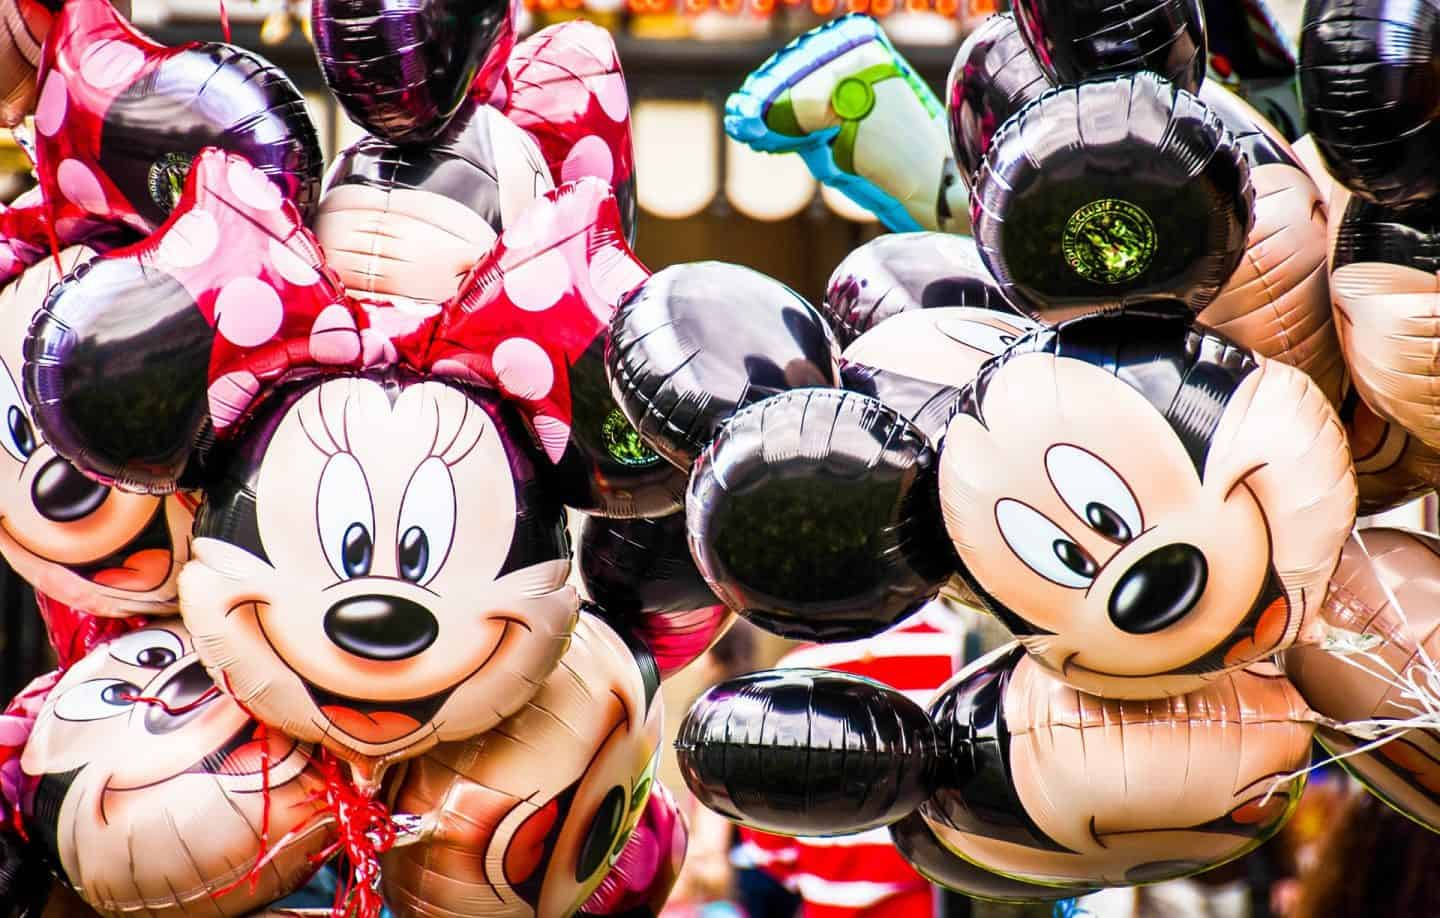 Disney balloons of Mickey and Minnie Mouse